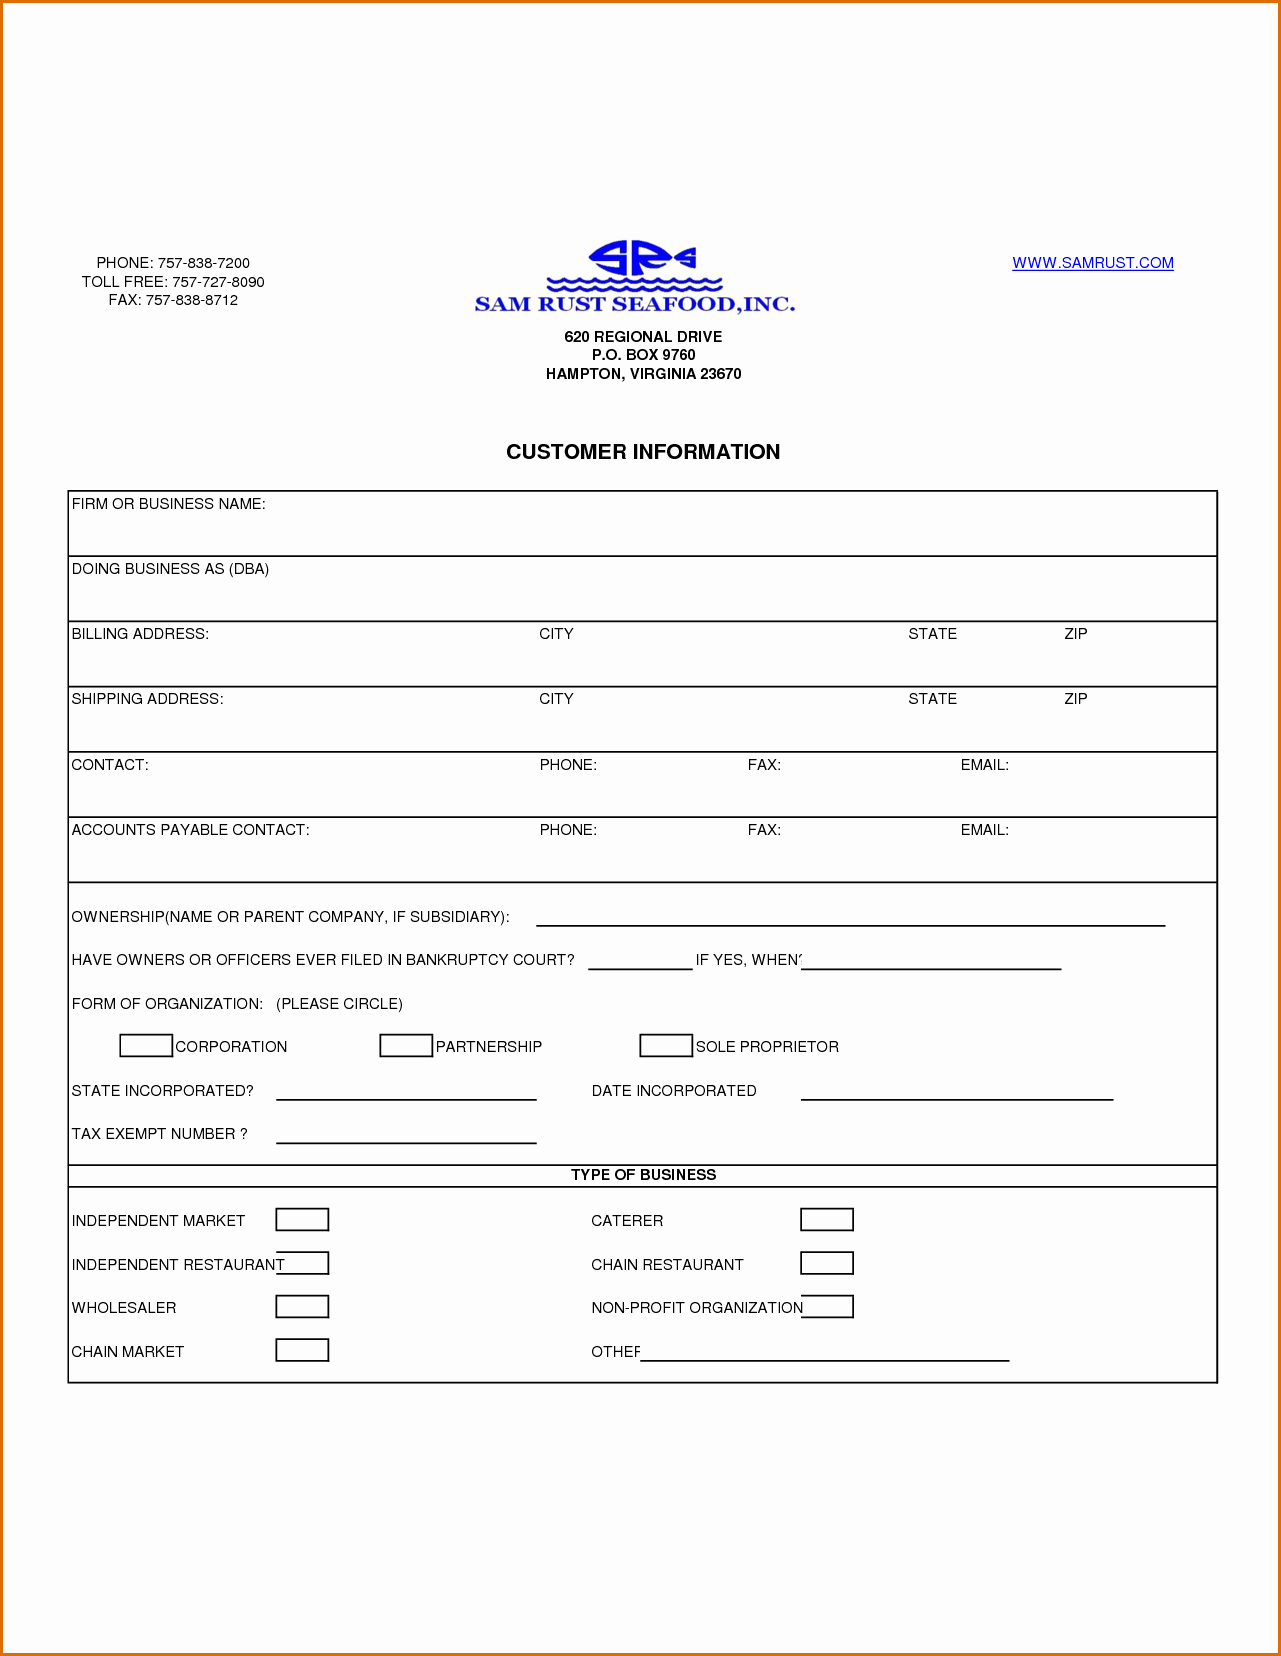 New Customer form Template Elegant 13 Customer Information form Template